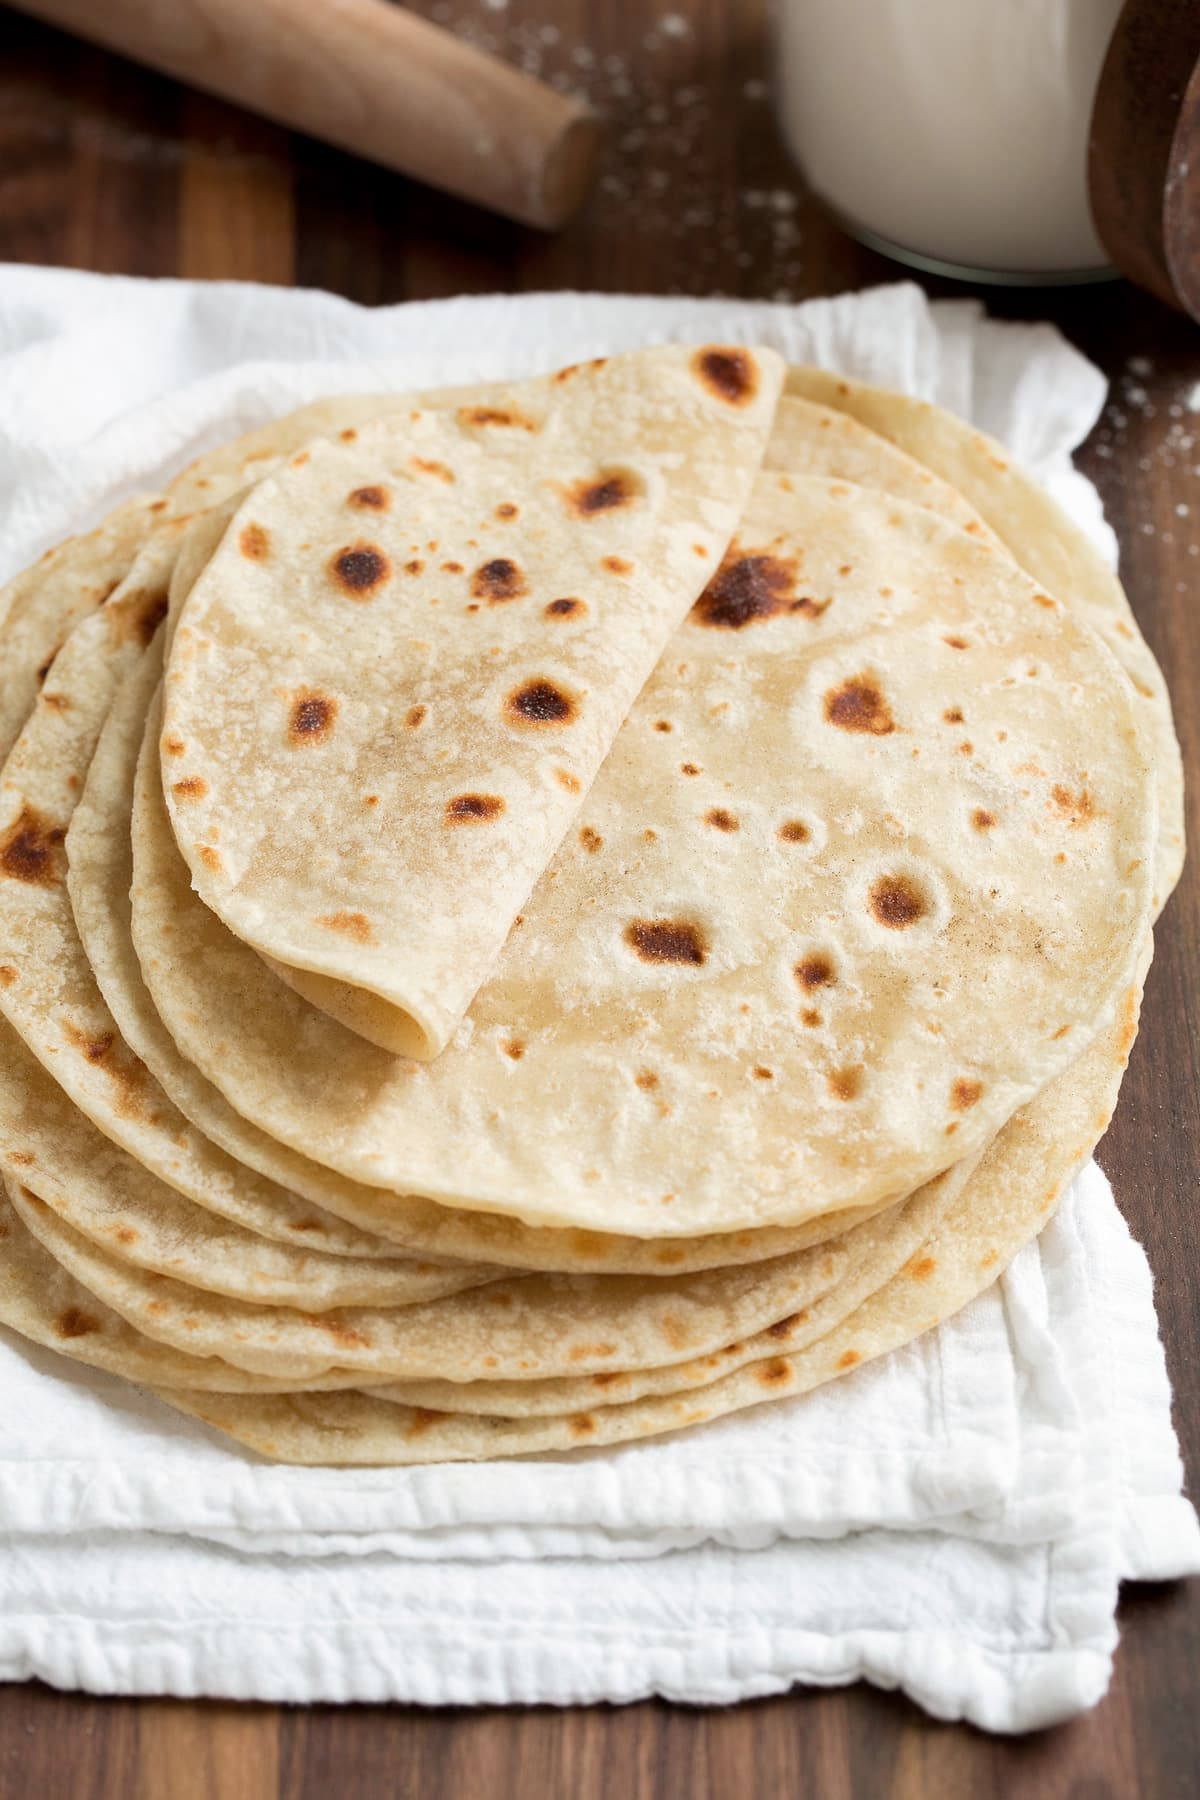 Stack of homemade flour tortillas on a white kitchen cloth. Top tortilla is folded over to show soft and moist texture.